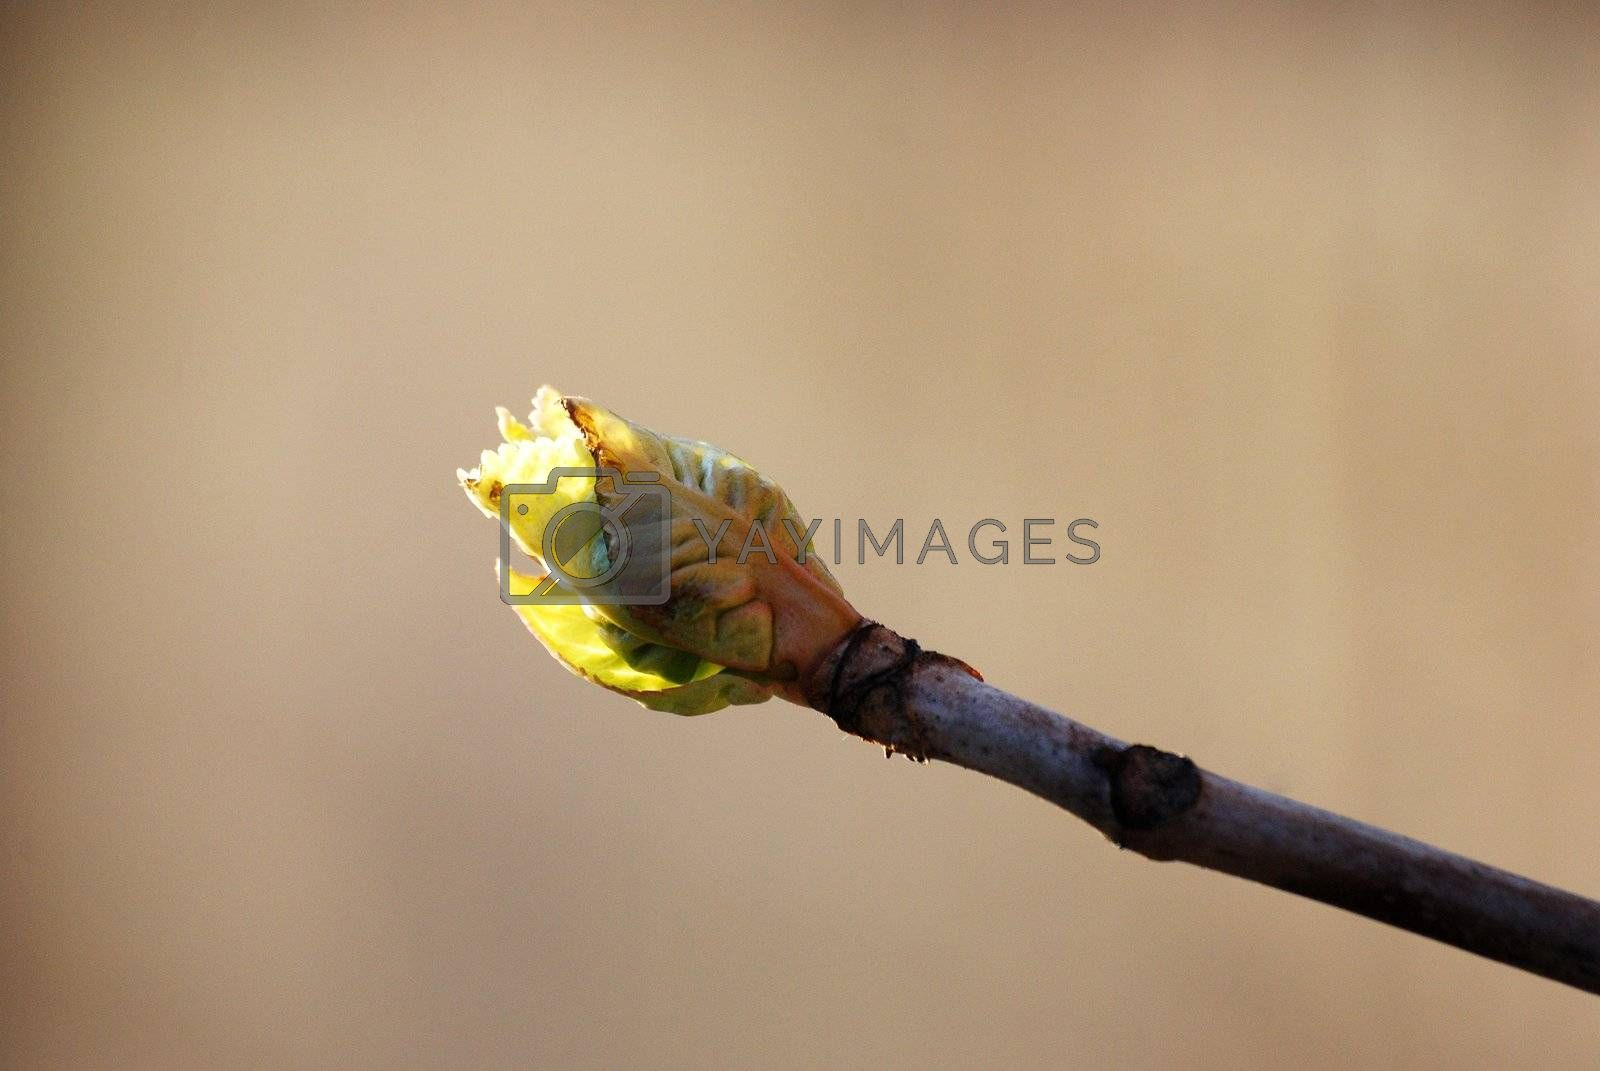 spring green bud on the top of the branch